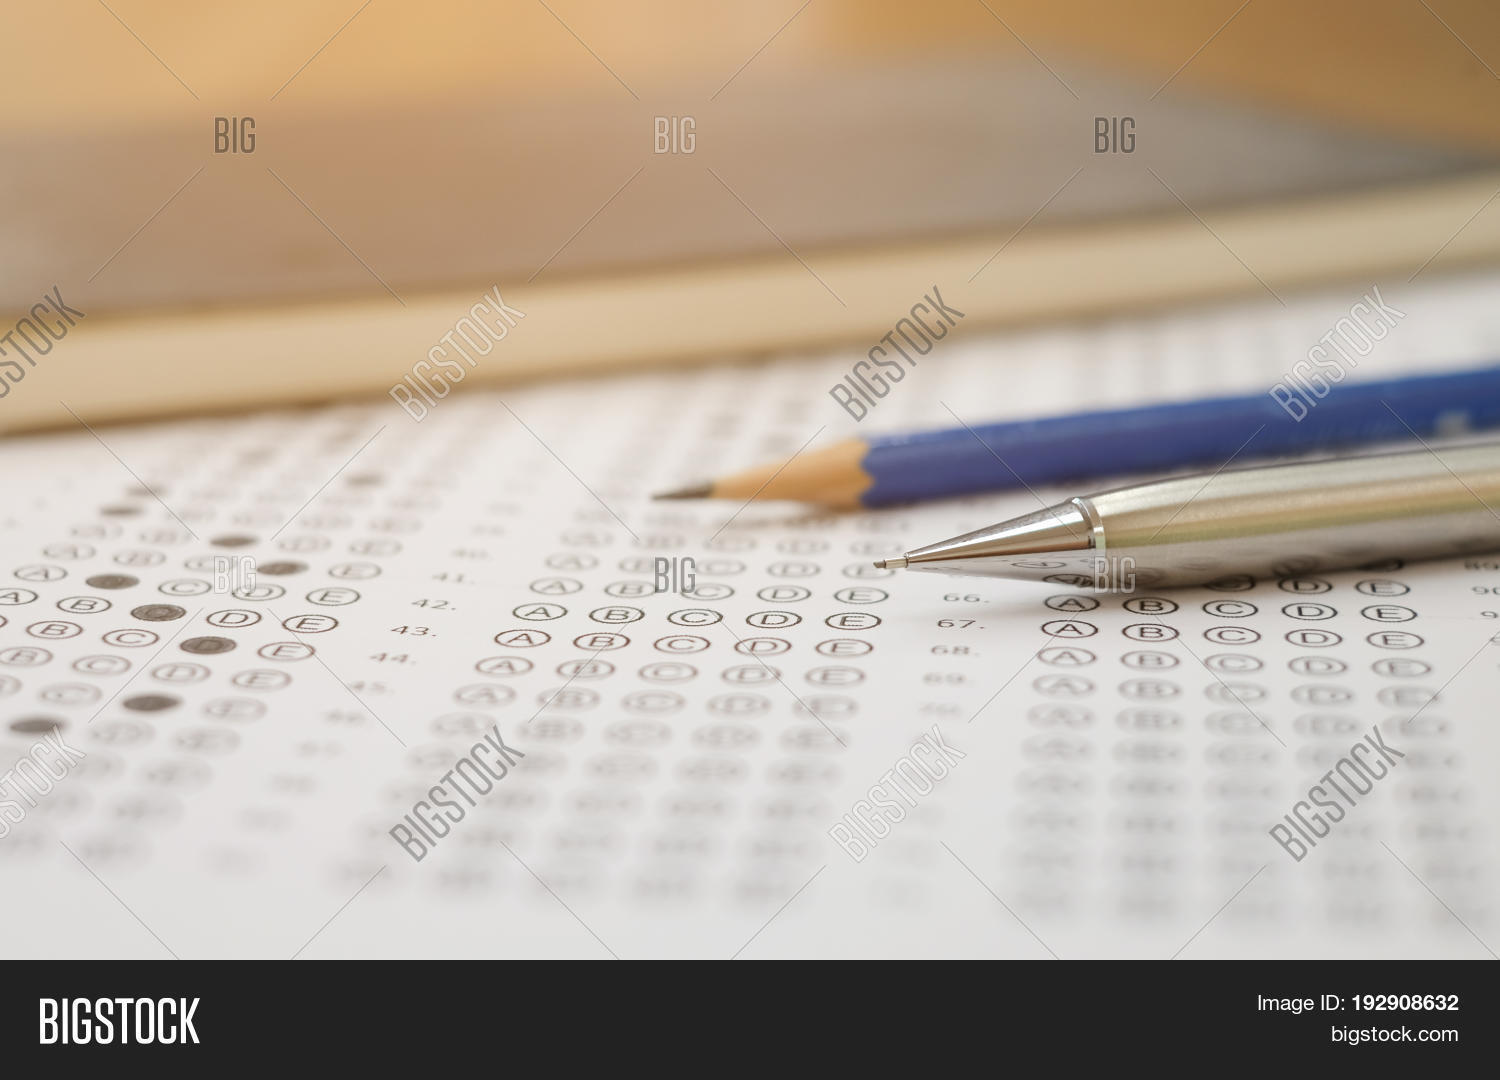 answer,background,blank,book,check,choice,circle,college,competition,education,entrance,exam,examination,fill,gmat,iq,knowledge,learning,mark,maths,multiple,paper,pencil,question,questionnaire,quiz,school,scores,sheet,student,study,survey,test,university